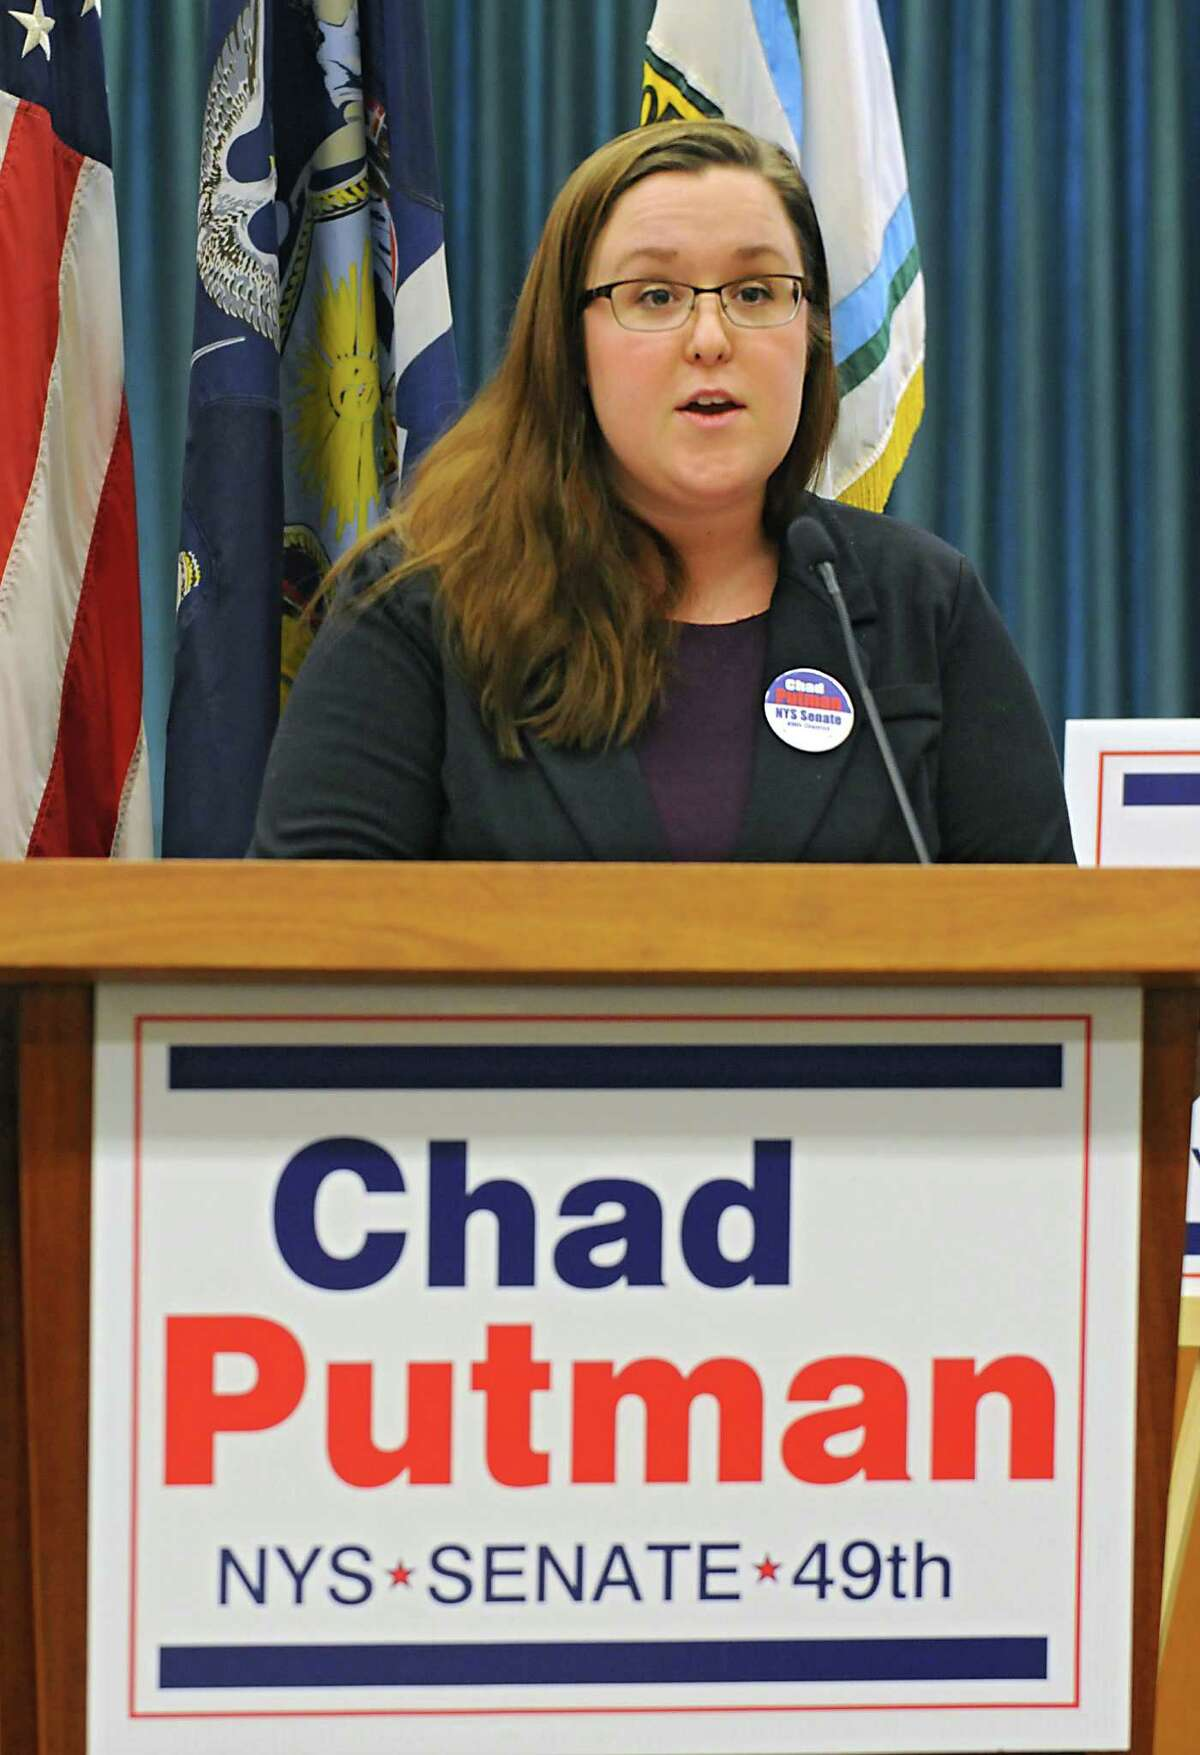 Sara Mae Hickey, Owner, Puzzles Cafe, states her support for Chad Putman who announced his candidacy for New York State's 49th Senate District at Niskayuna Town Hall on Thursday, March 10, 2016, in Niskayuna, N.Y. (Lori Van Buren / Times Union)